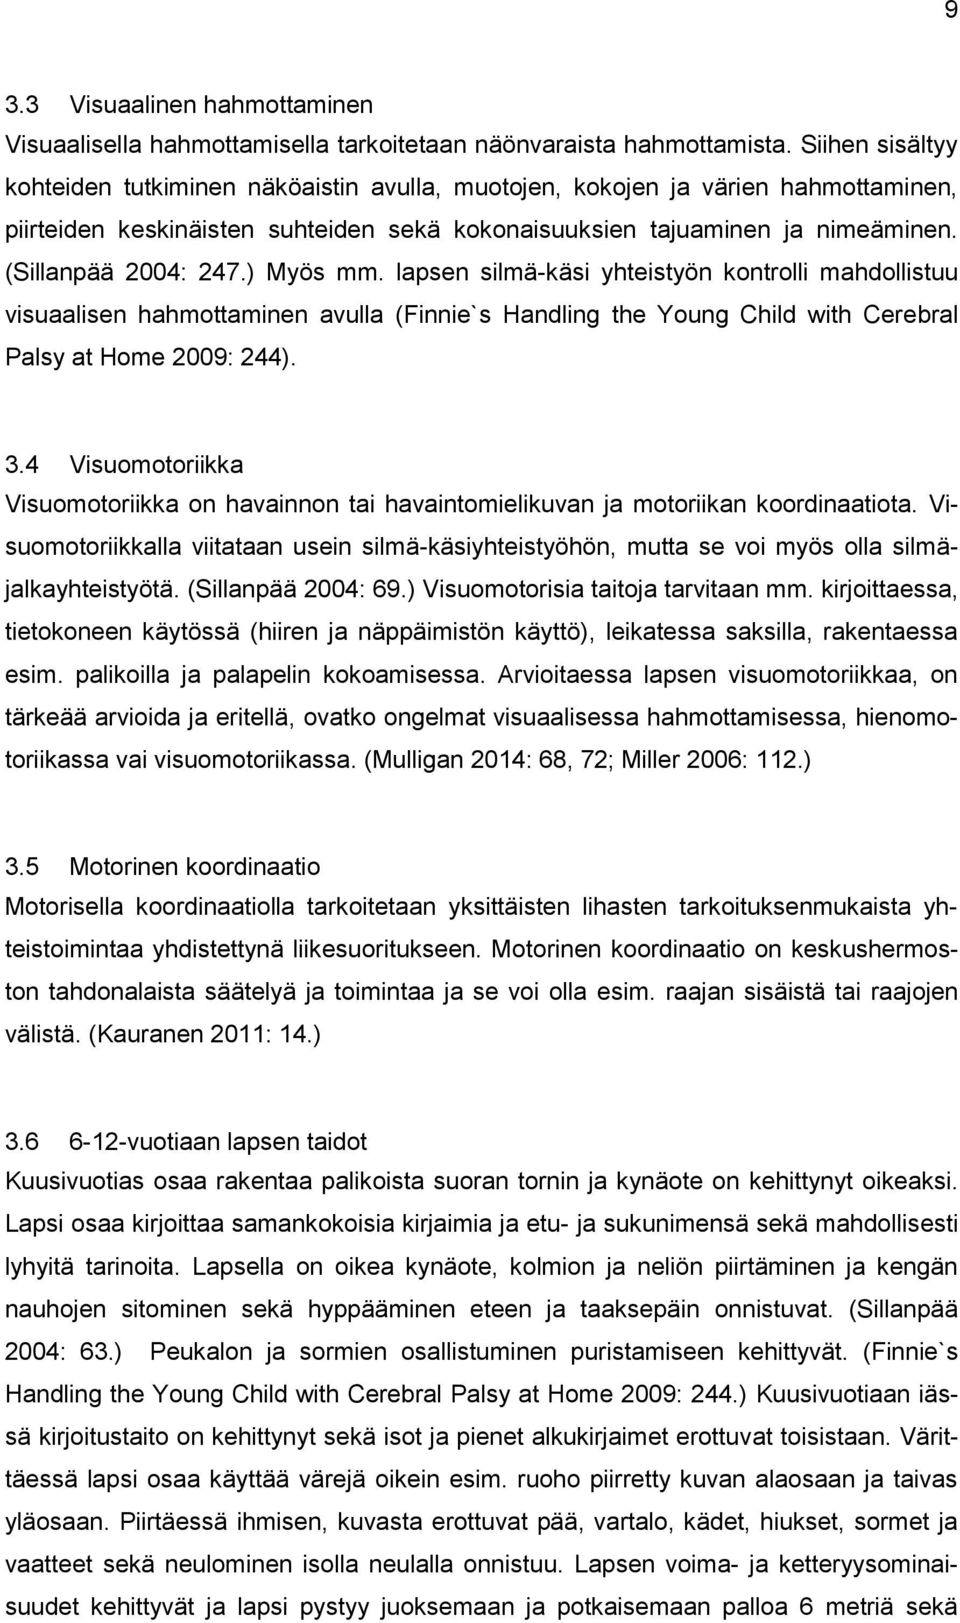 (Sillanpää 2004: 247.) Myös mm. lapsen silmä-käsi yhteistyön kontrolli mahdollistuu visuaalisen hahmottaminen avulla (Finnie`s Handling the Young Child with Cerebral Palsy at Home 2009: 244). 3.